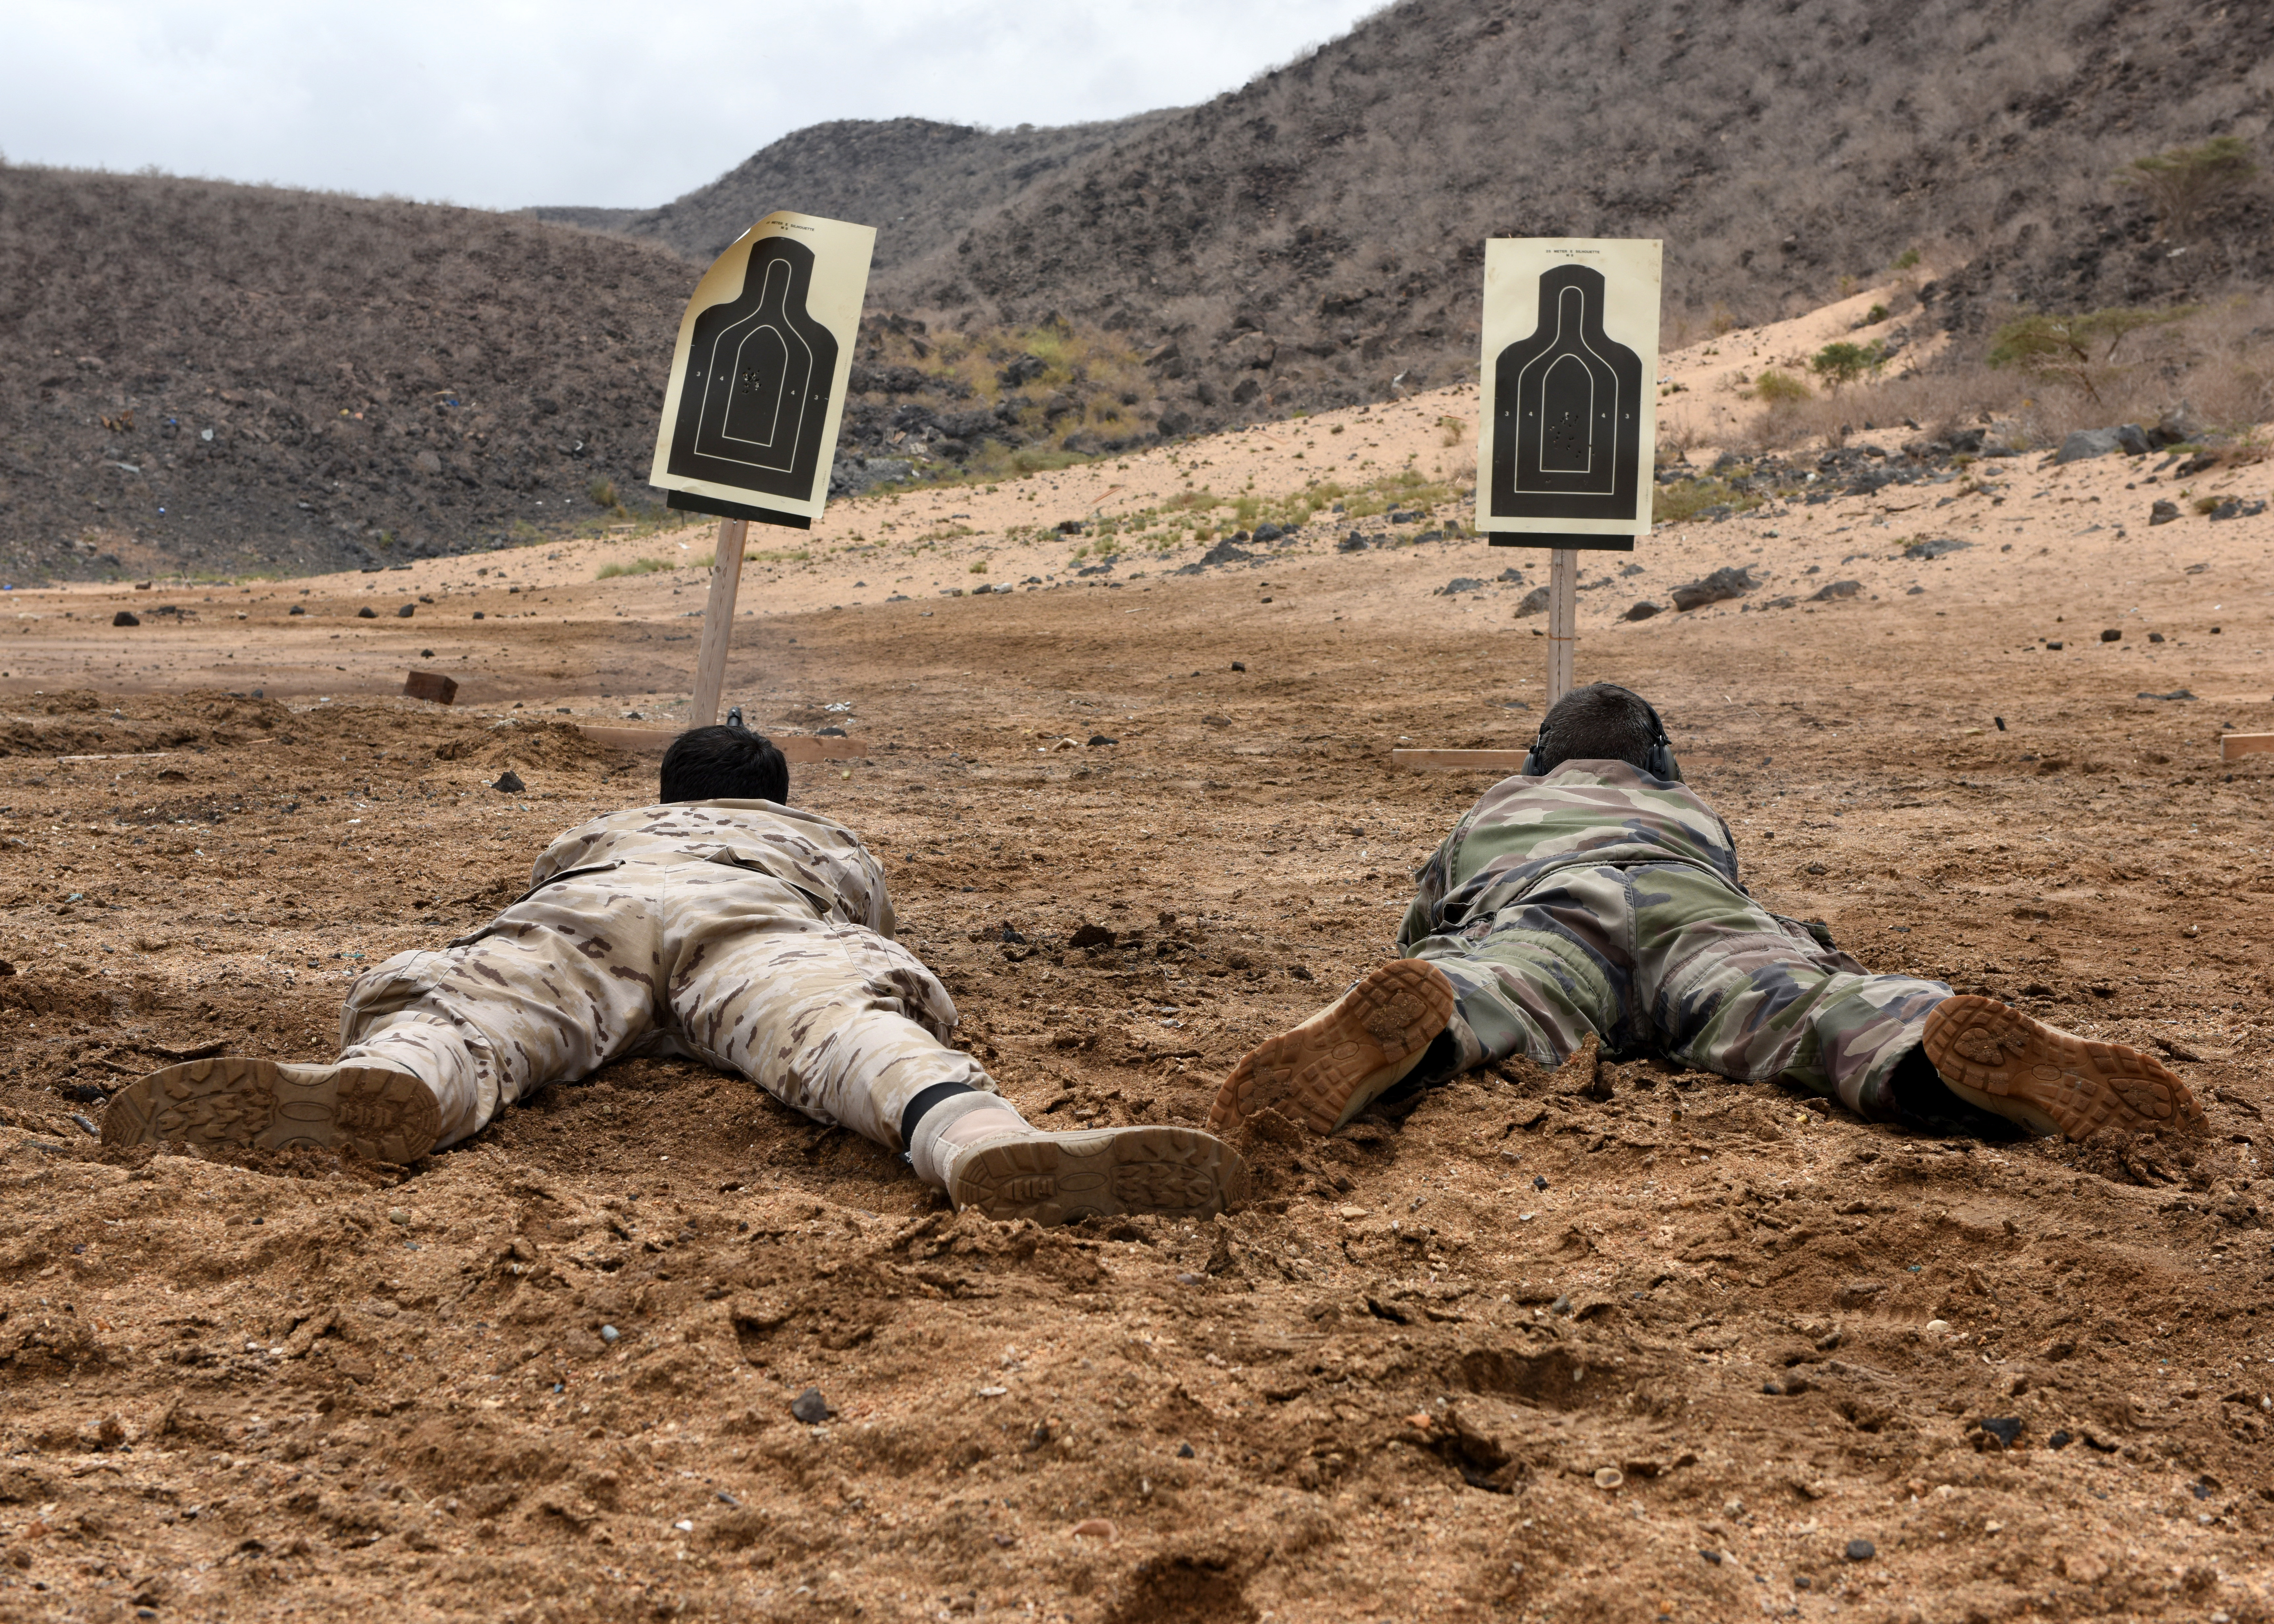 Combined Joint Task Force-Horn of Africa foreign liaison officers from Spain and France shoot targets from a prone position using Beretta M9 pistols during weapons familiarization at the Djibouti Range Complex, Arta, Djibouti, Feb. 16, 2019. The course gave the foreign liaison officers an insight on the Beretta M9 pistol and stance techniques used by U.S. military members. (U.S. Air Force photo by Staff Sgt. Franklin R. Ramos)